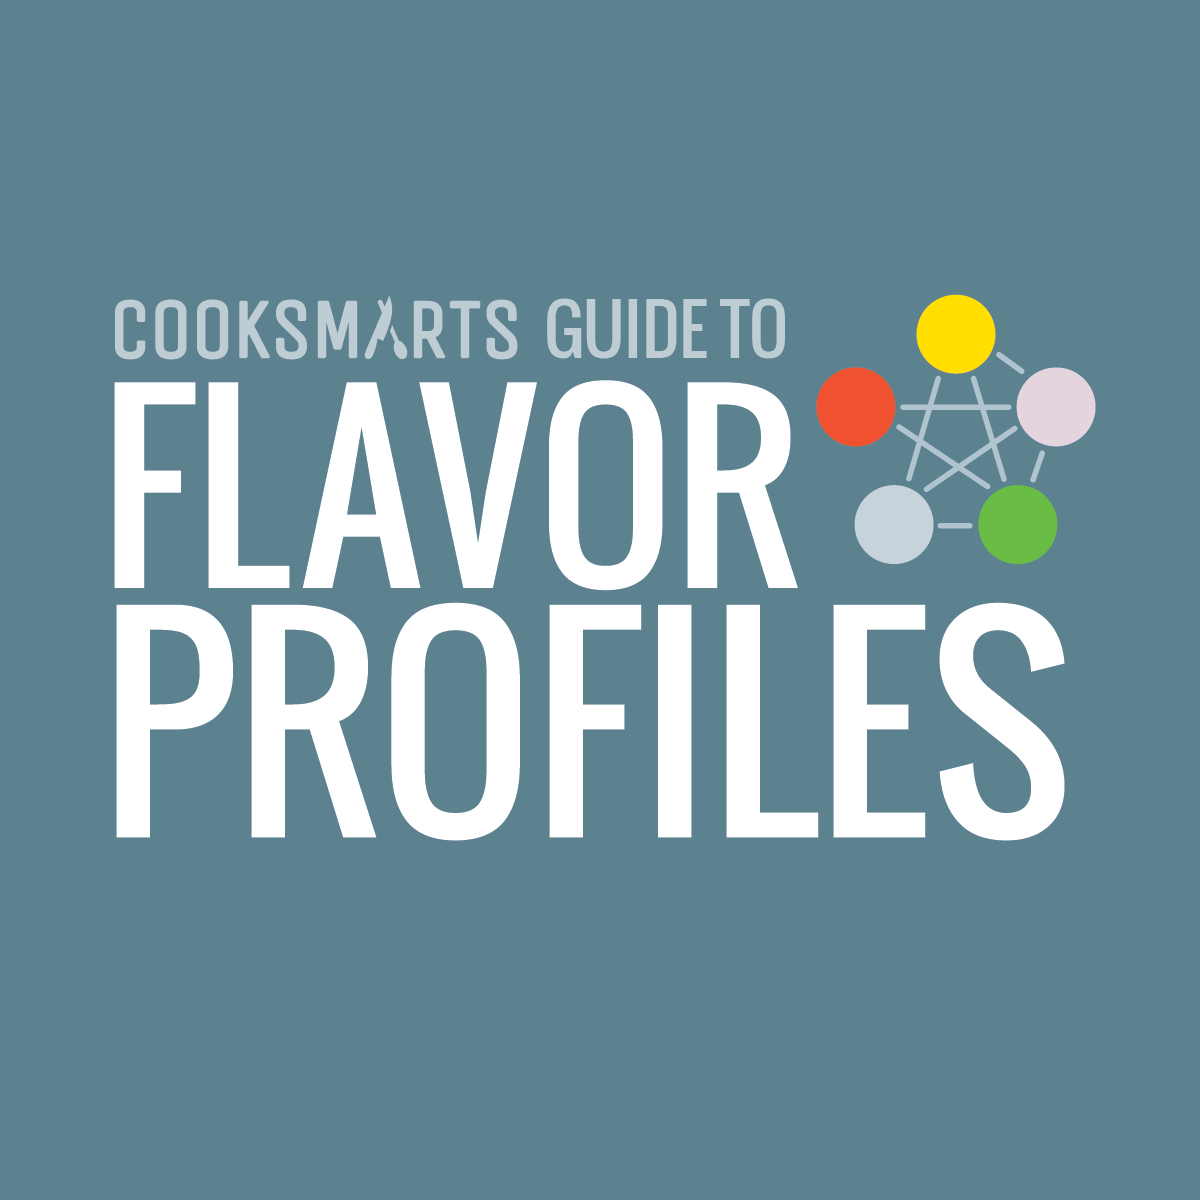 A Study of Flavor Profiles | Foods, Recipes and Cooking blogs